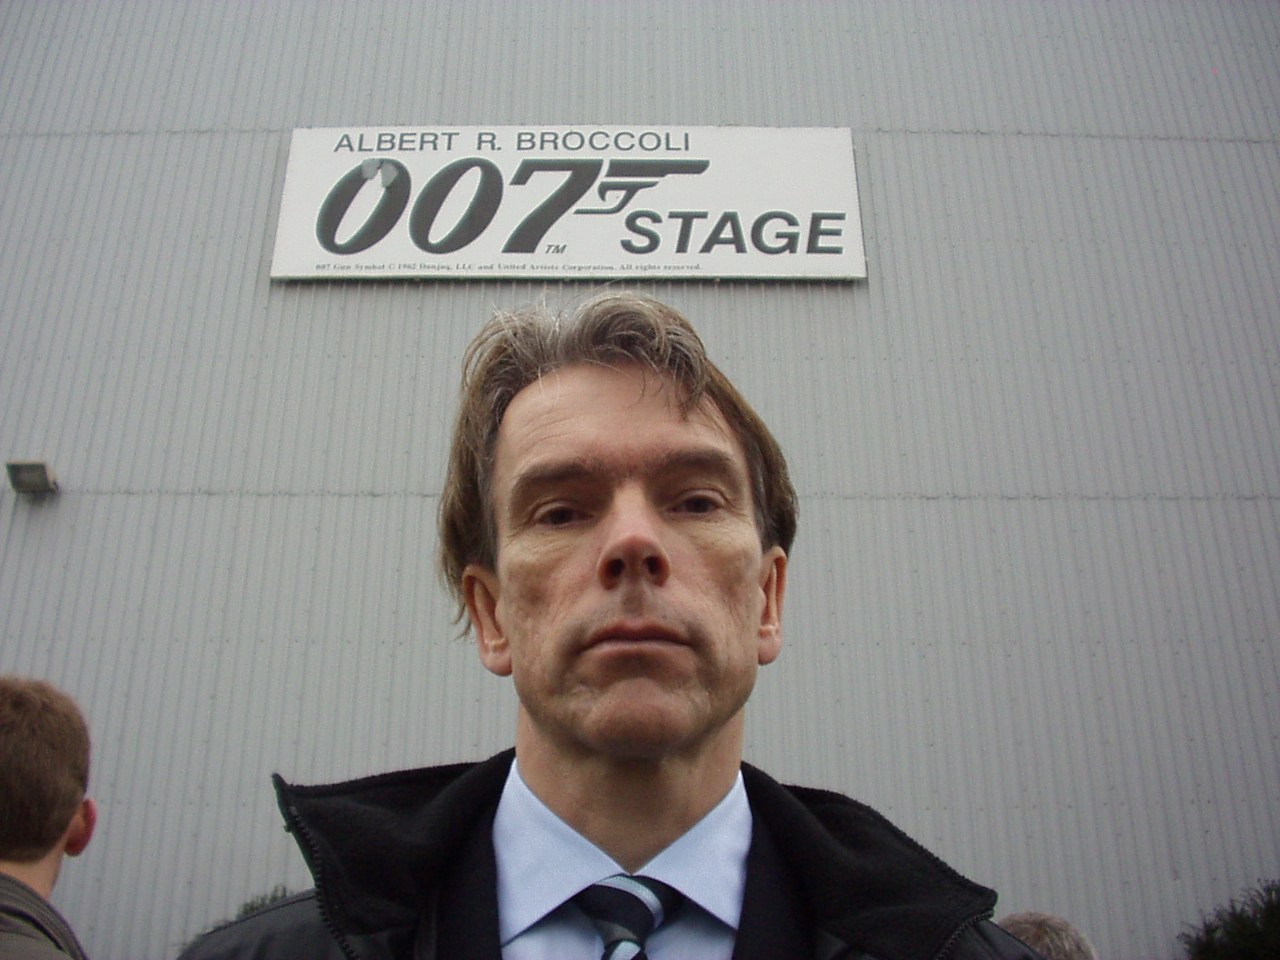 The name is Bond James Bond in Pinewood studios London